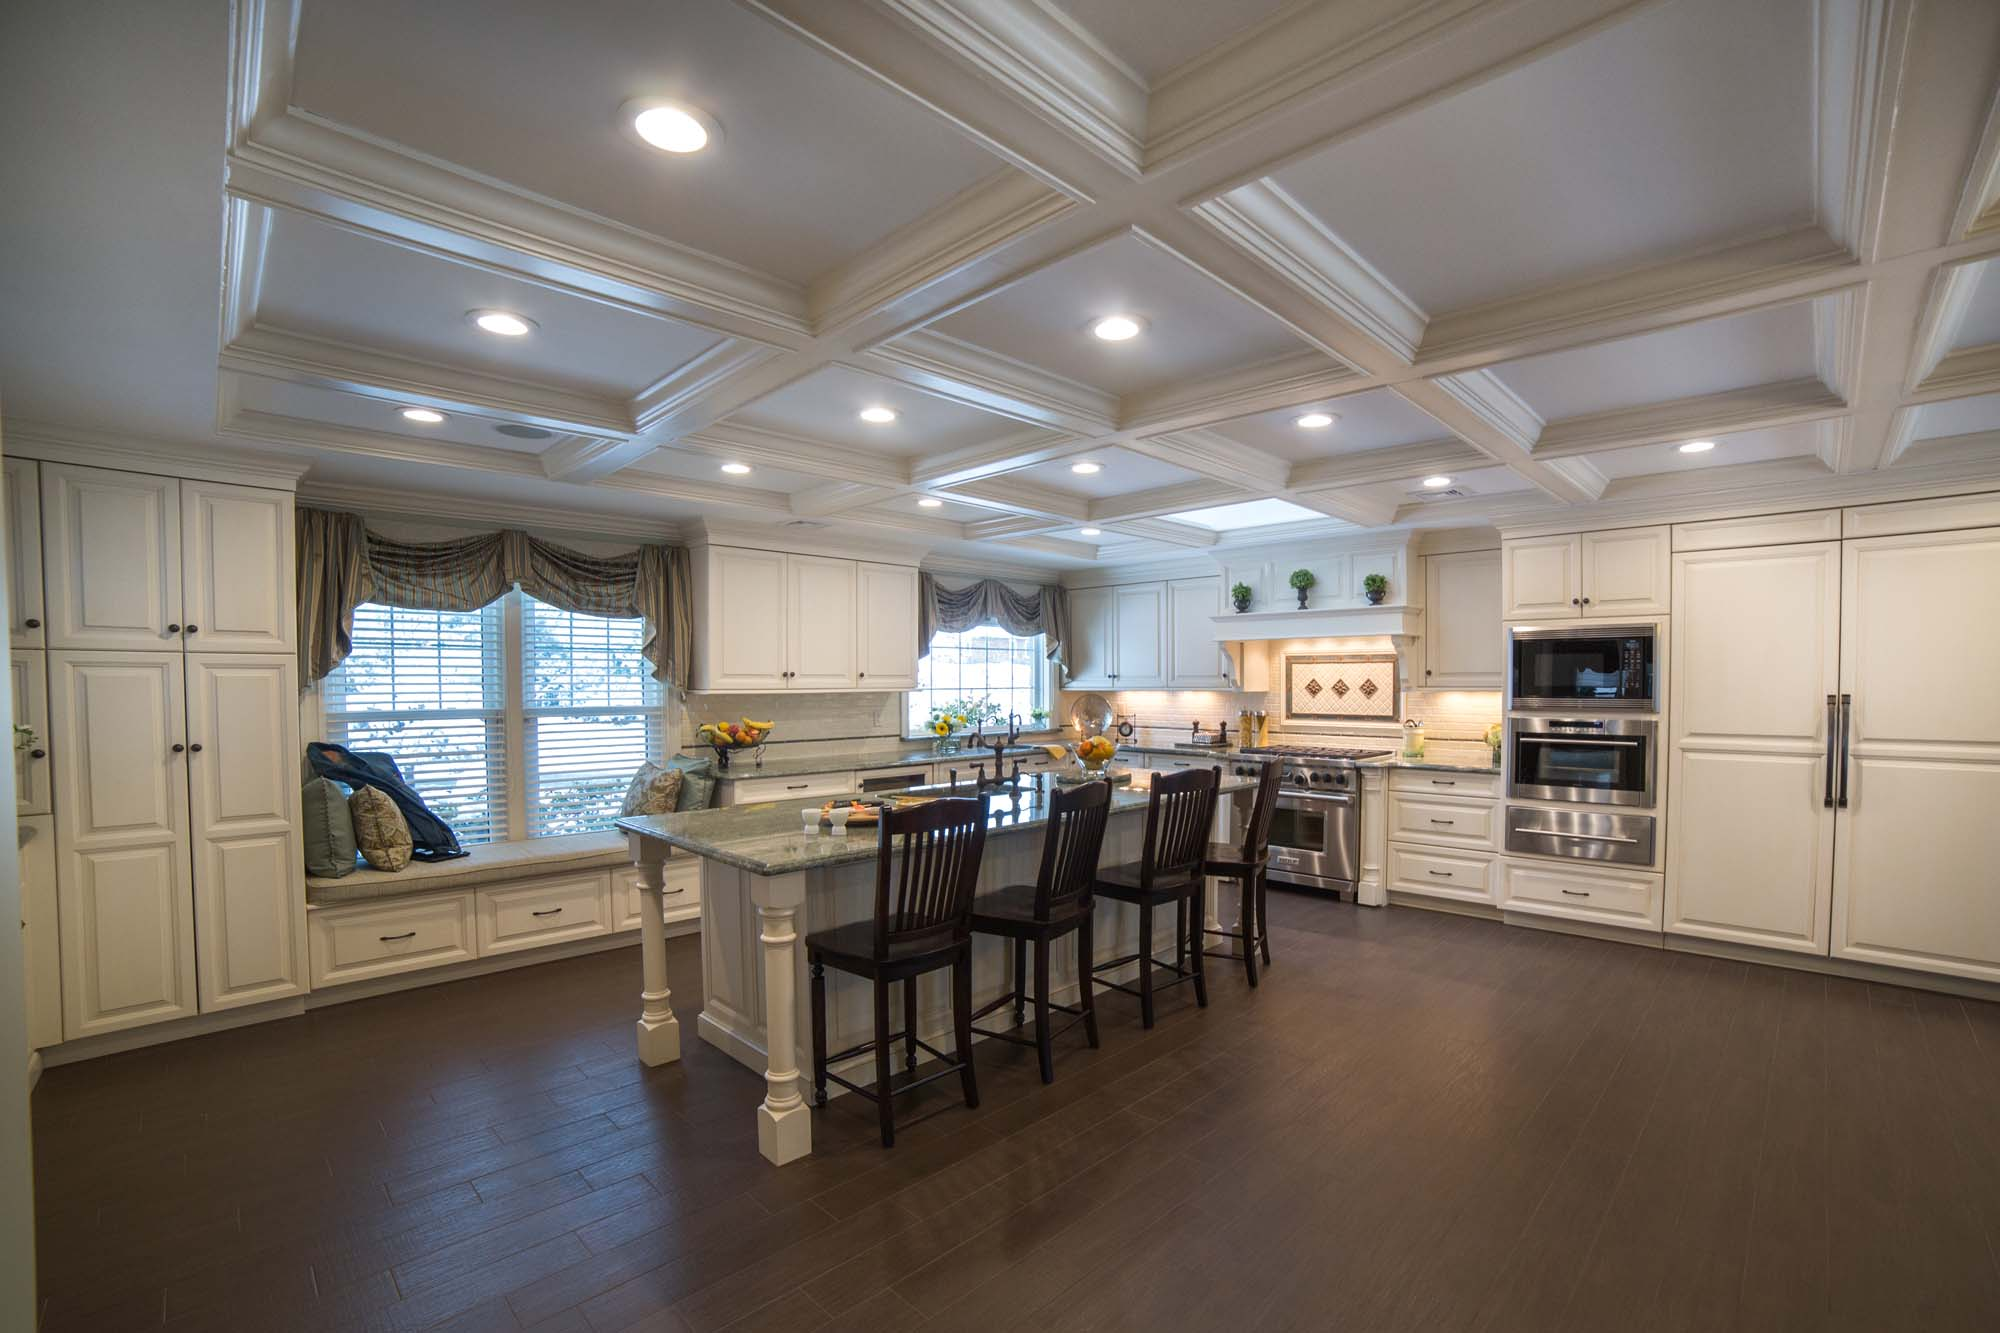 CLASSIC FAMILY KITCHEN